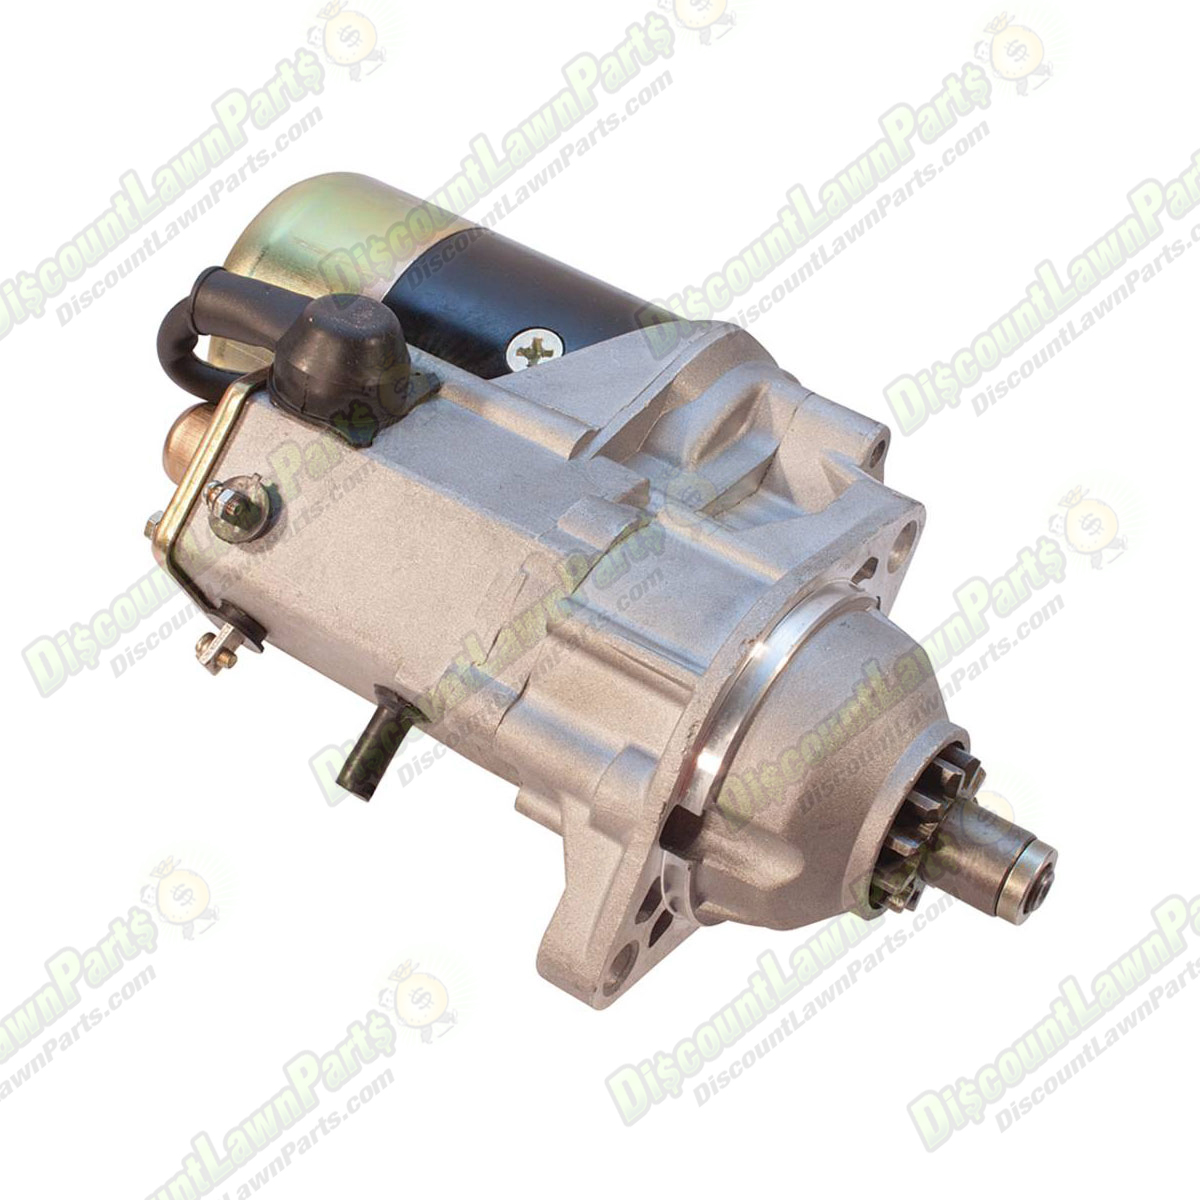 Electric starter bobcat 6685190 for Bobcat blower motor replacement